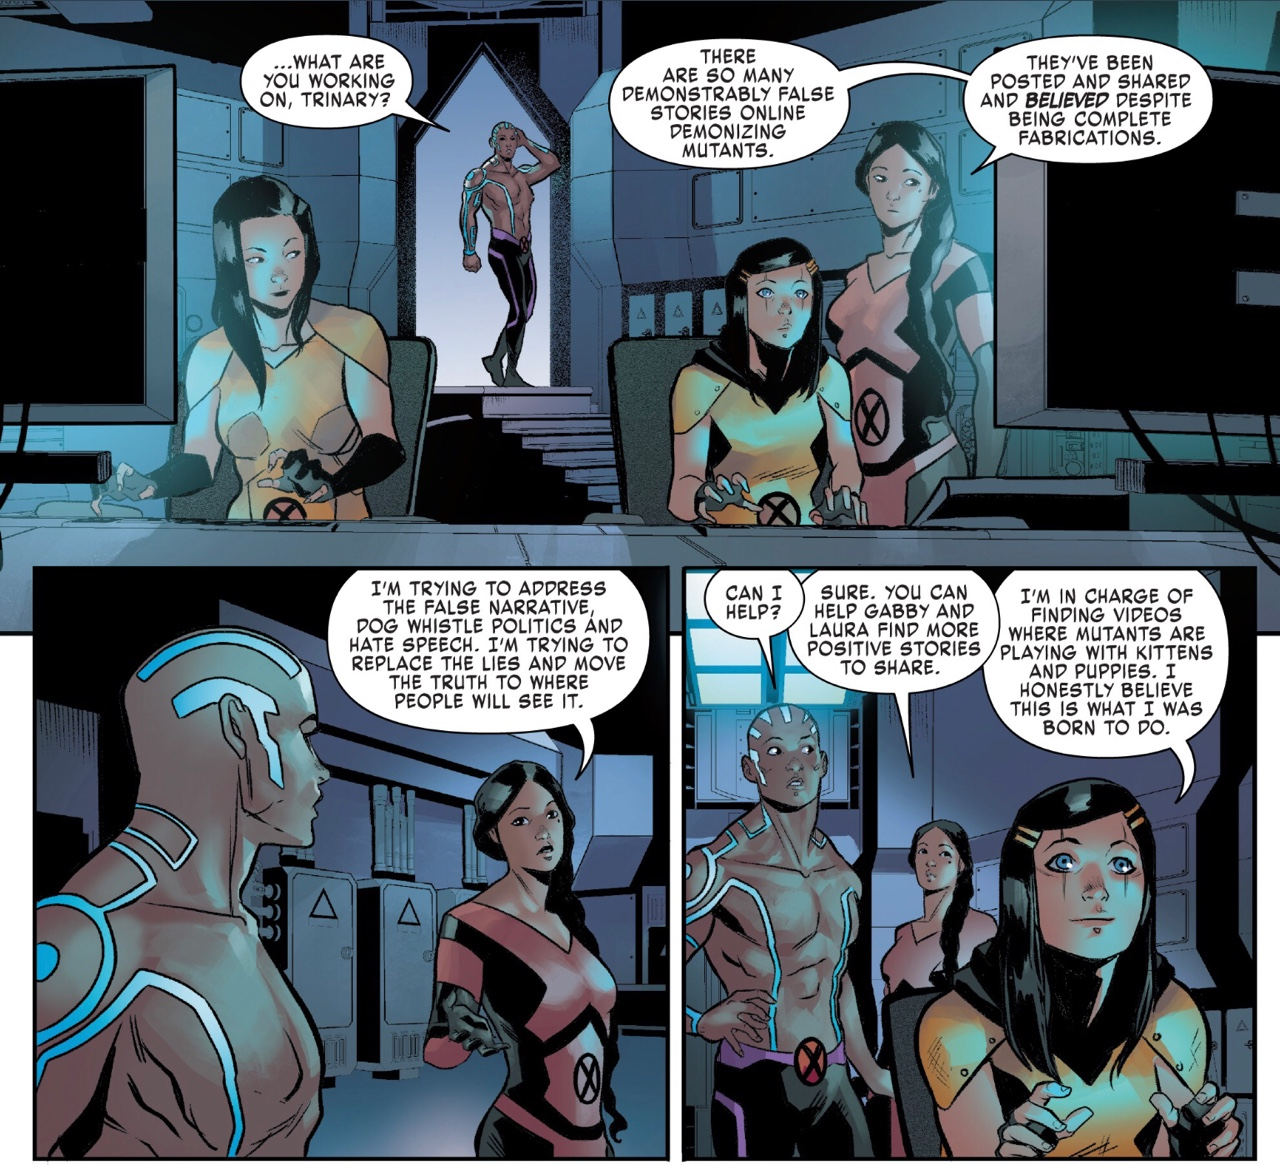 The X-Men fight fake news and also search for cat videos X-Men Red #9 by Tom Taylor and Roge Antonio